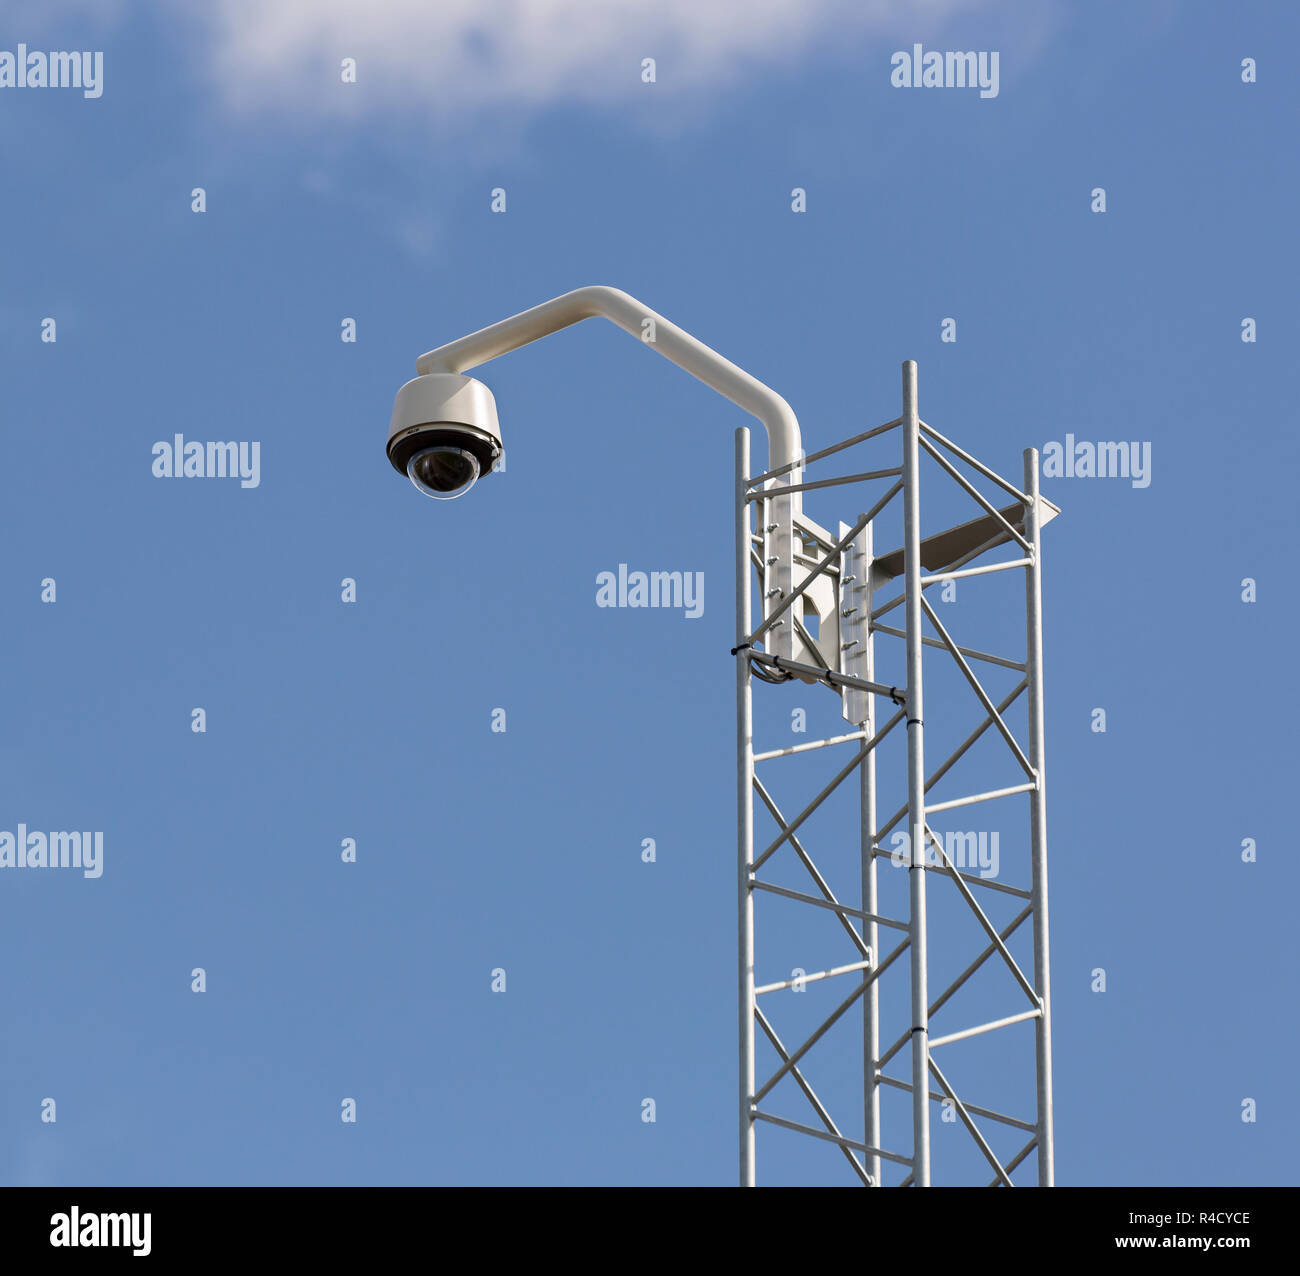 Video Surveillance Camera - Stock Image